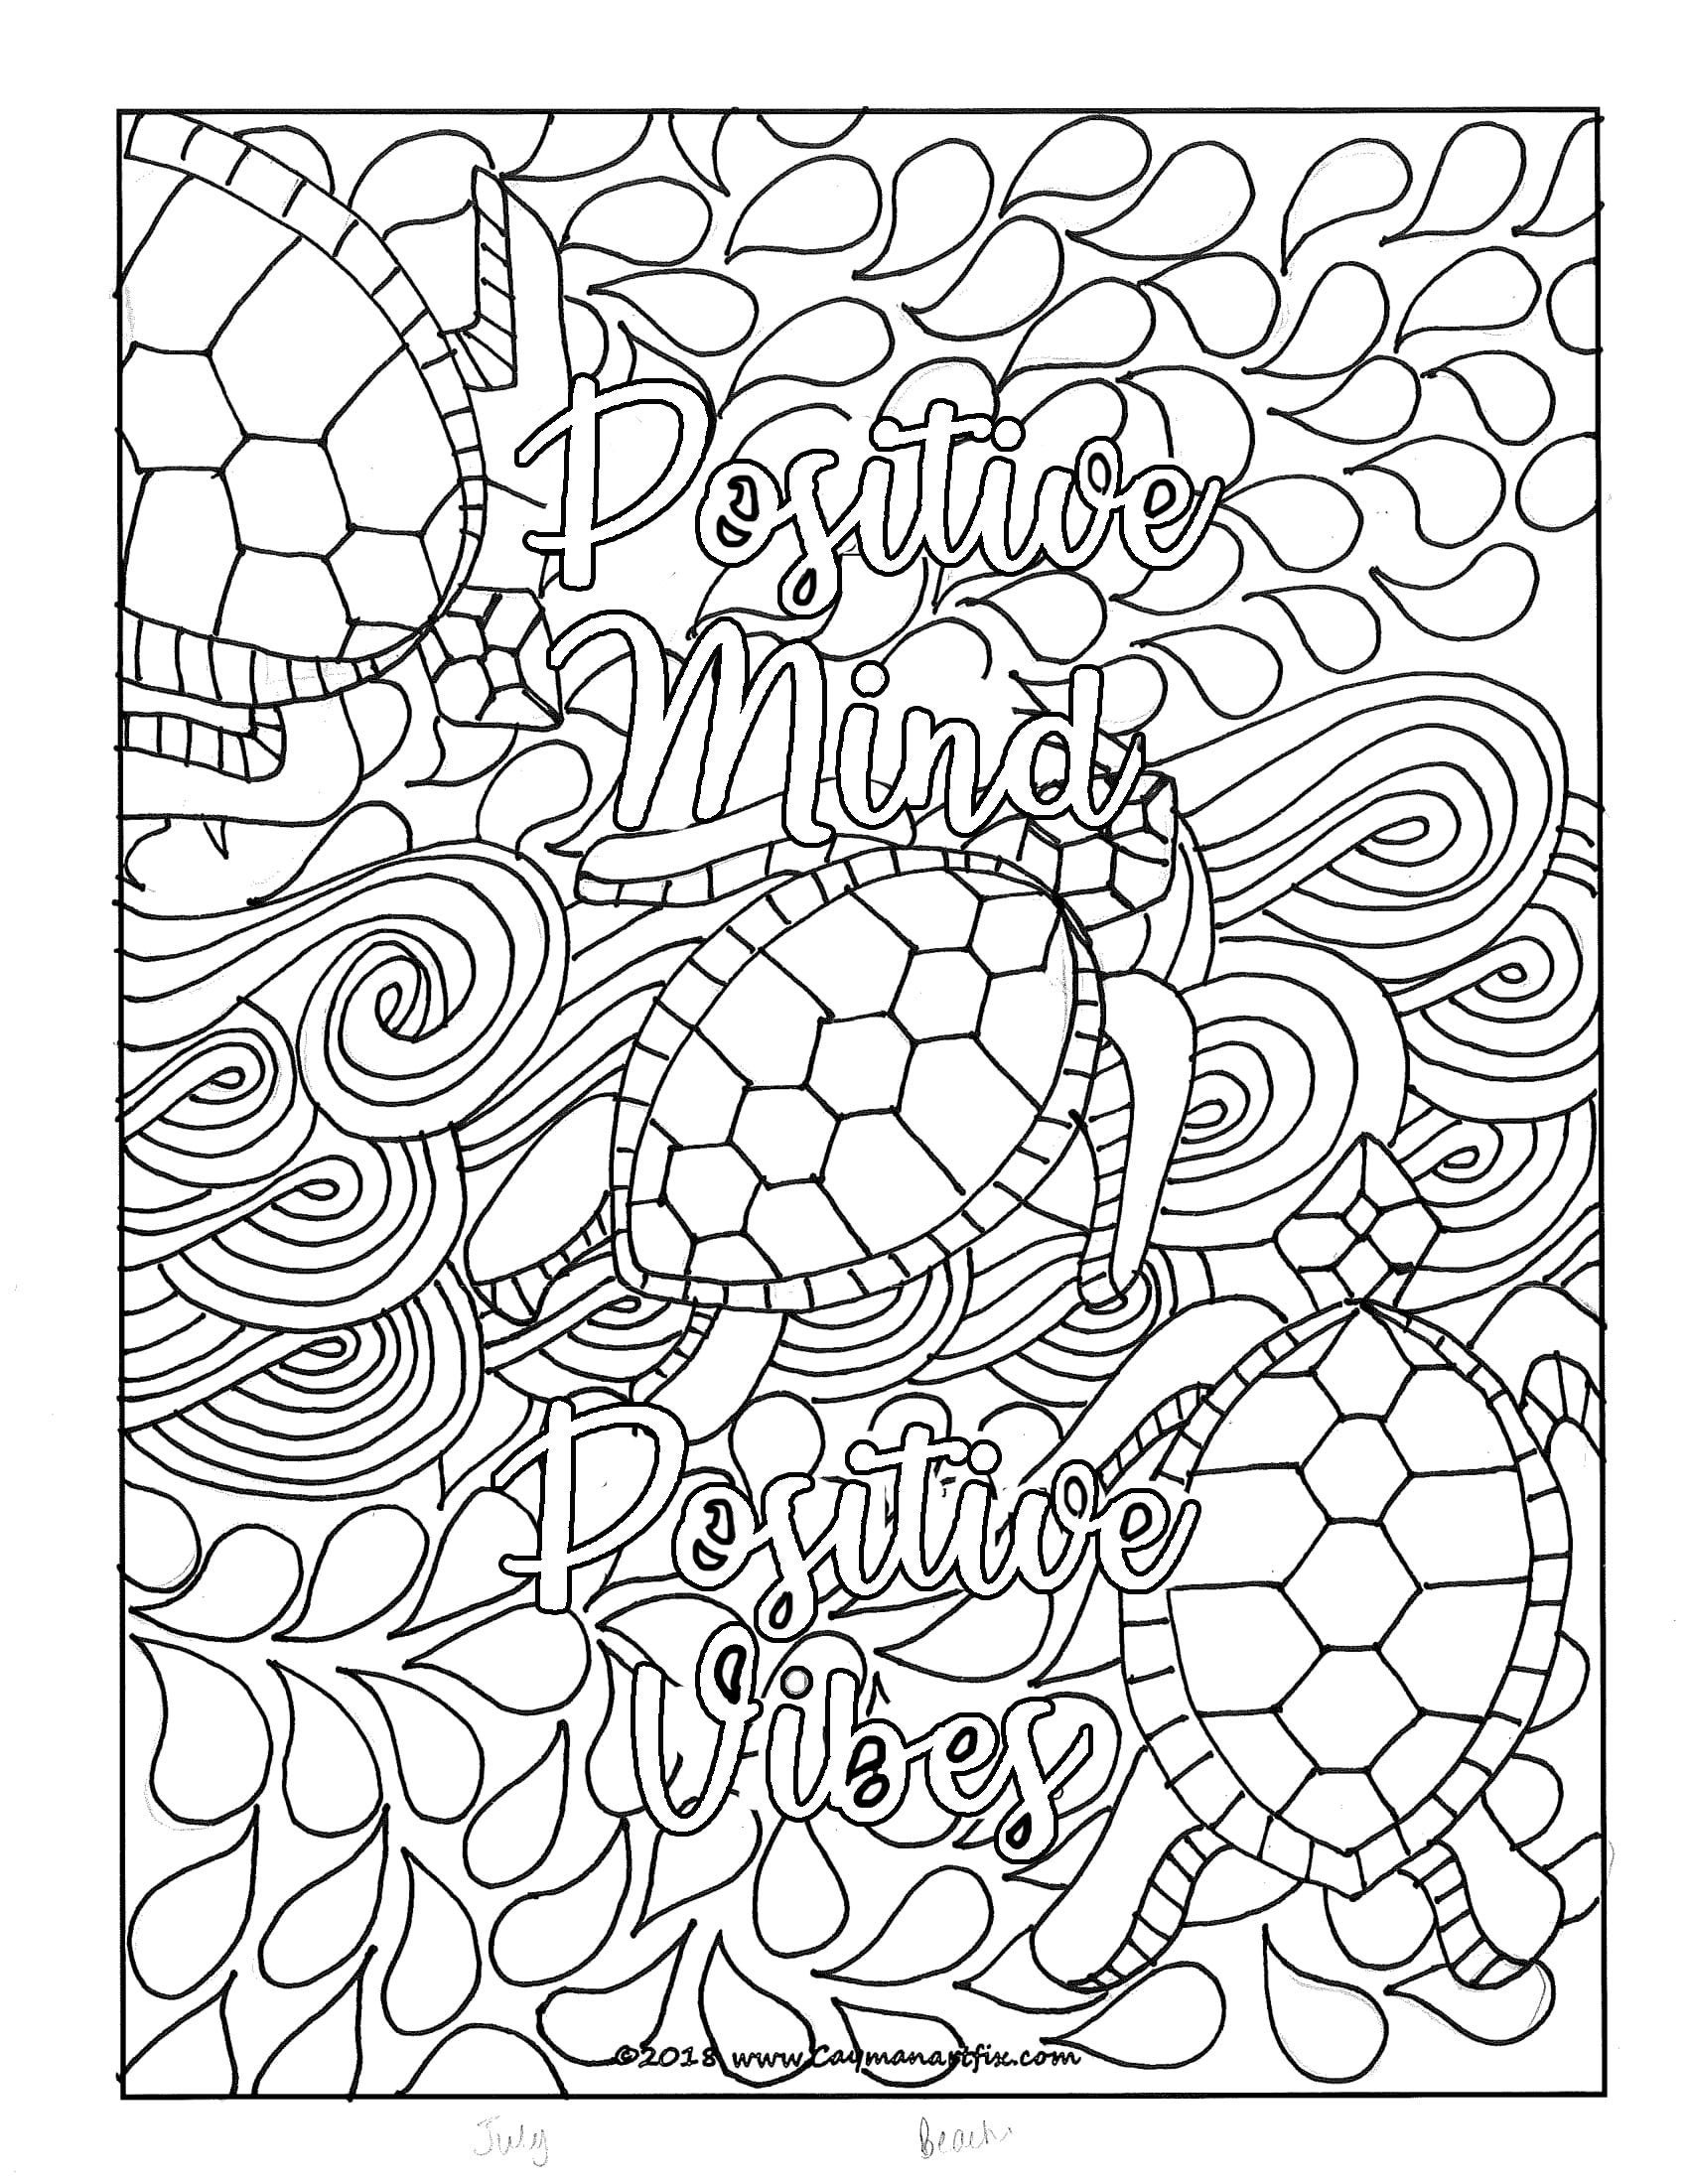 positive quotes coloring sheets inspirational quotes coloring pages quotesgram coloring sheets positive quotes